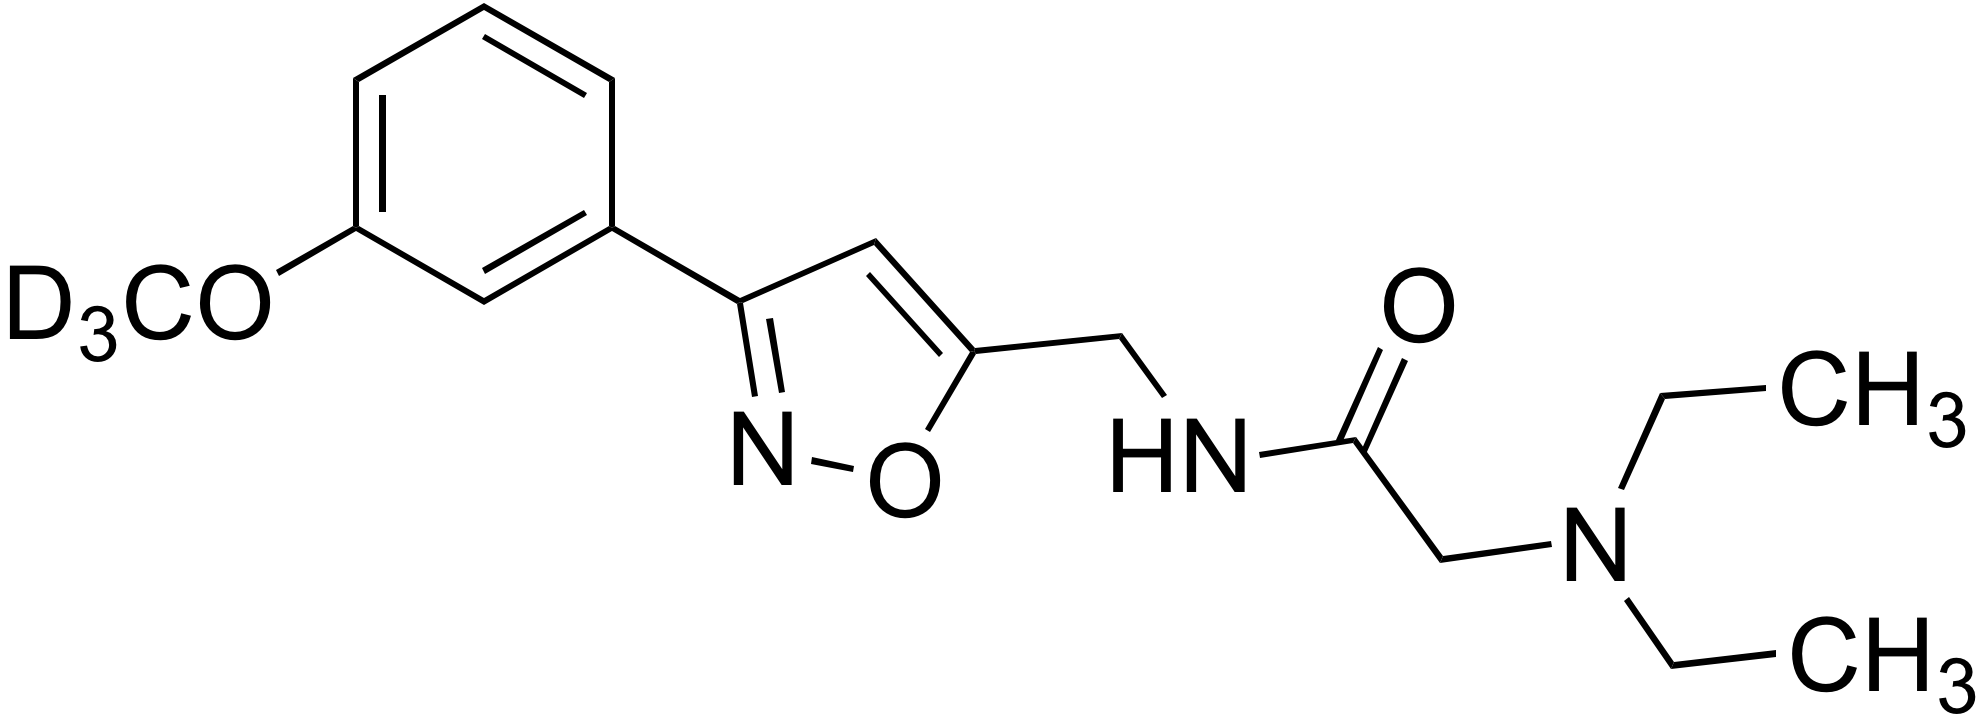 2-(Diethylamino)-N-((3-(3-methoxy-d<sub>3</sub>-phenyl)isoxazol-5-yl)methyl)acetamide